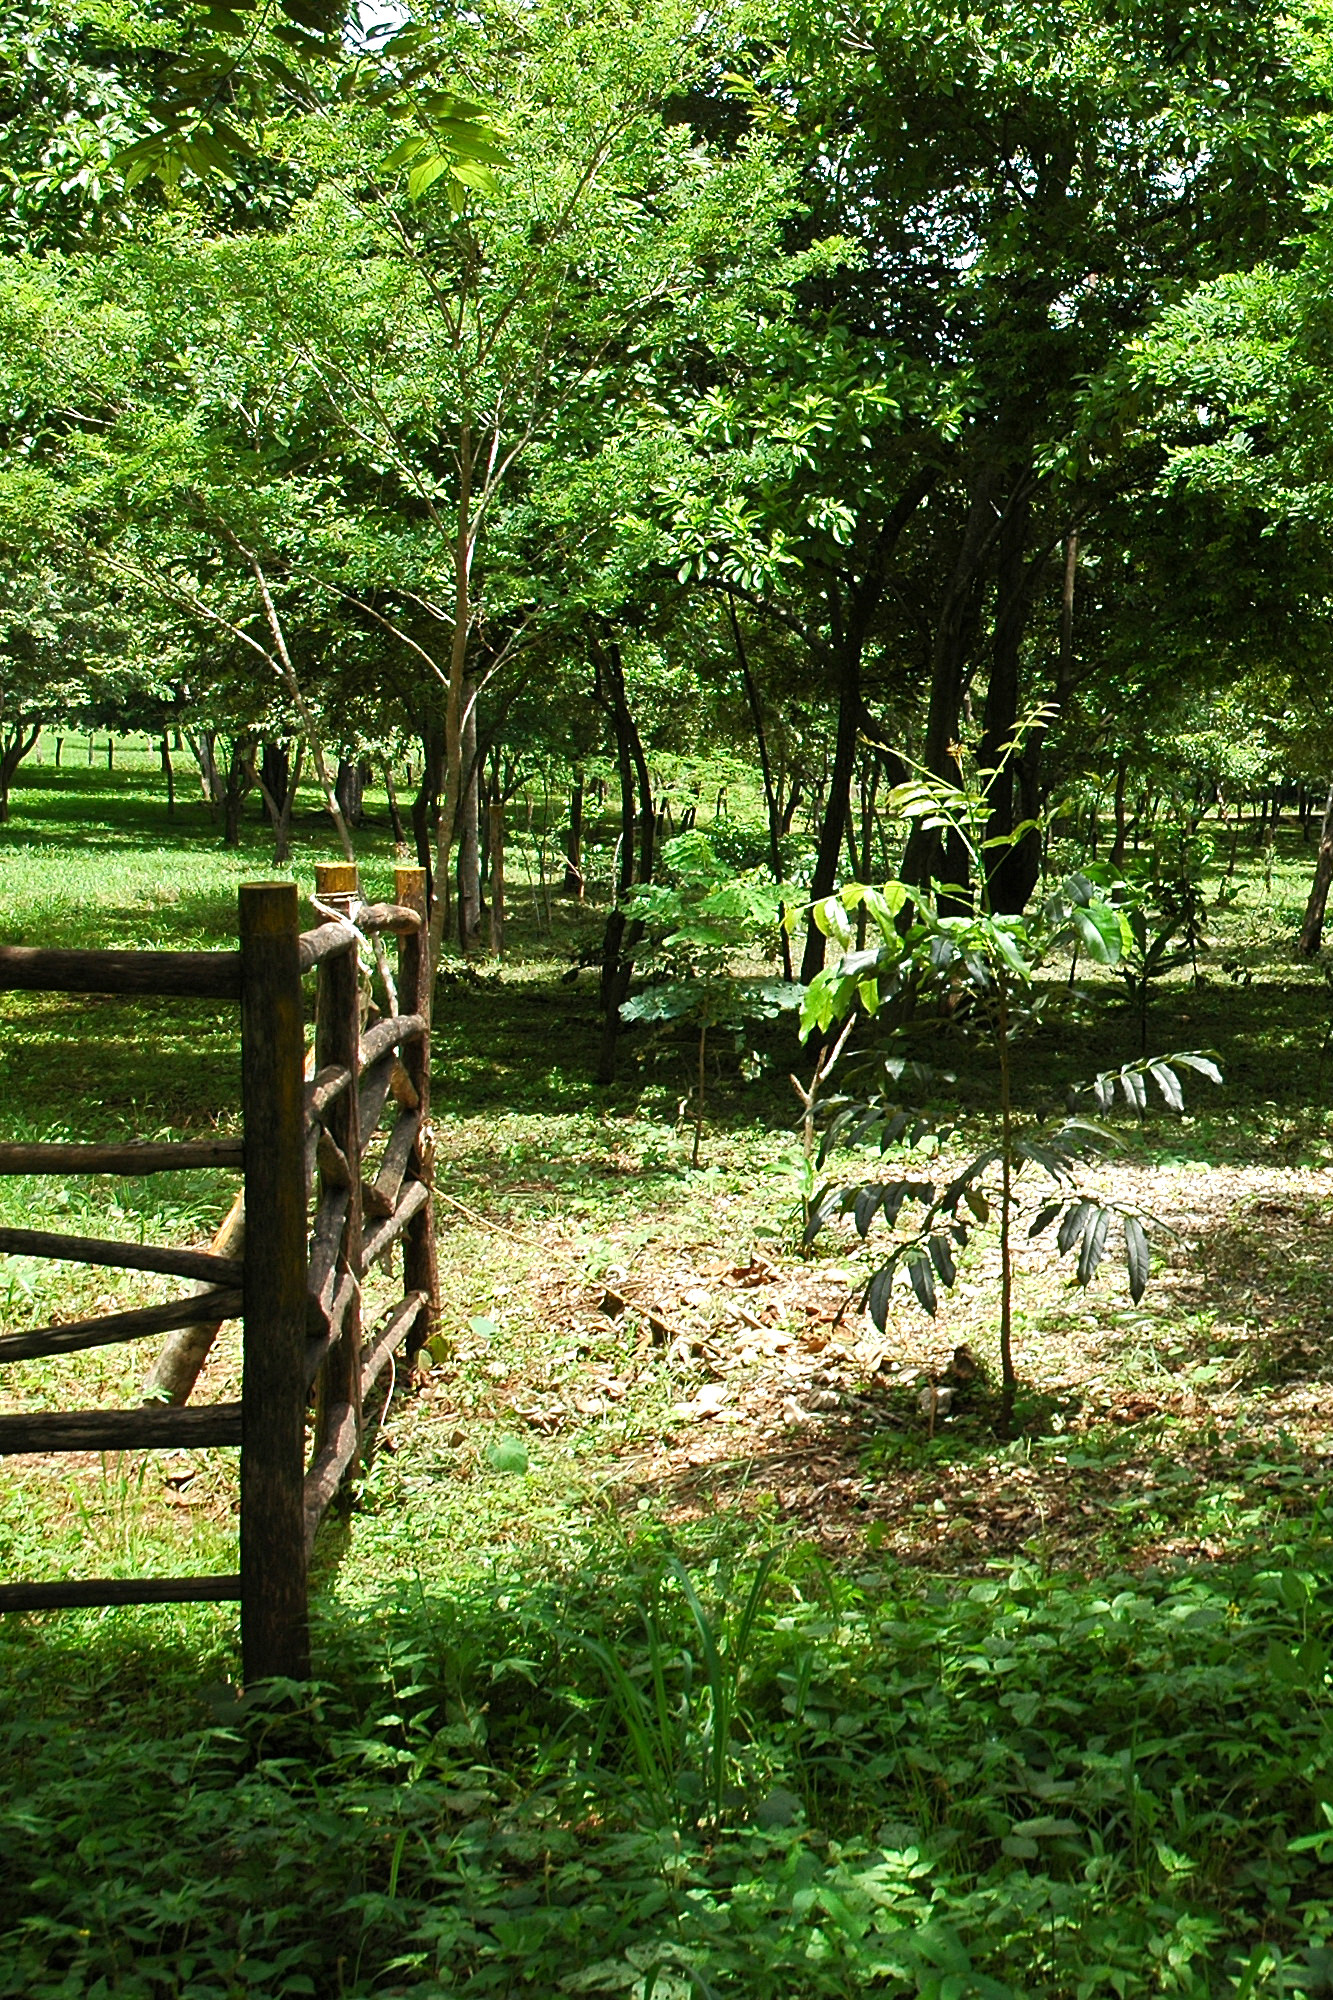 Horse Property For Sale in Costa Rica